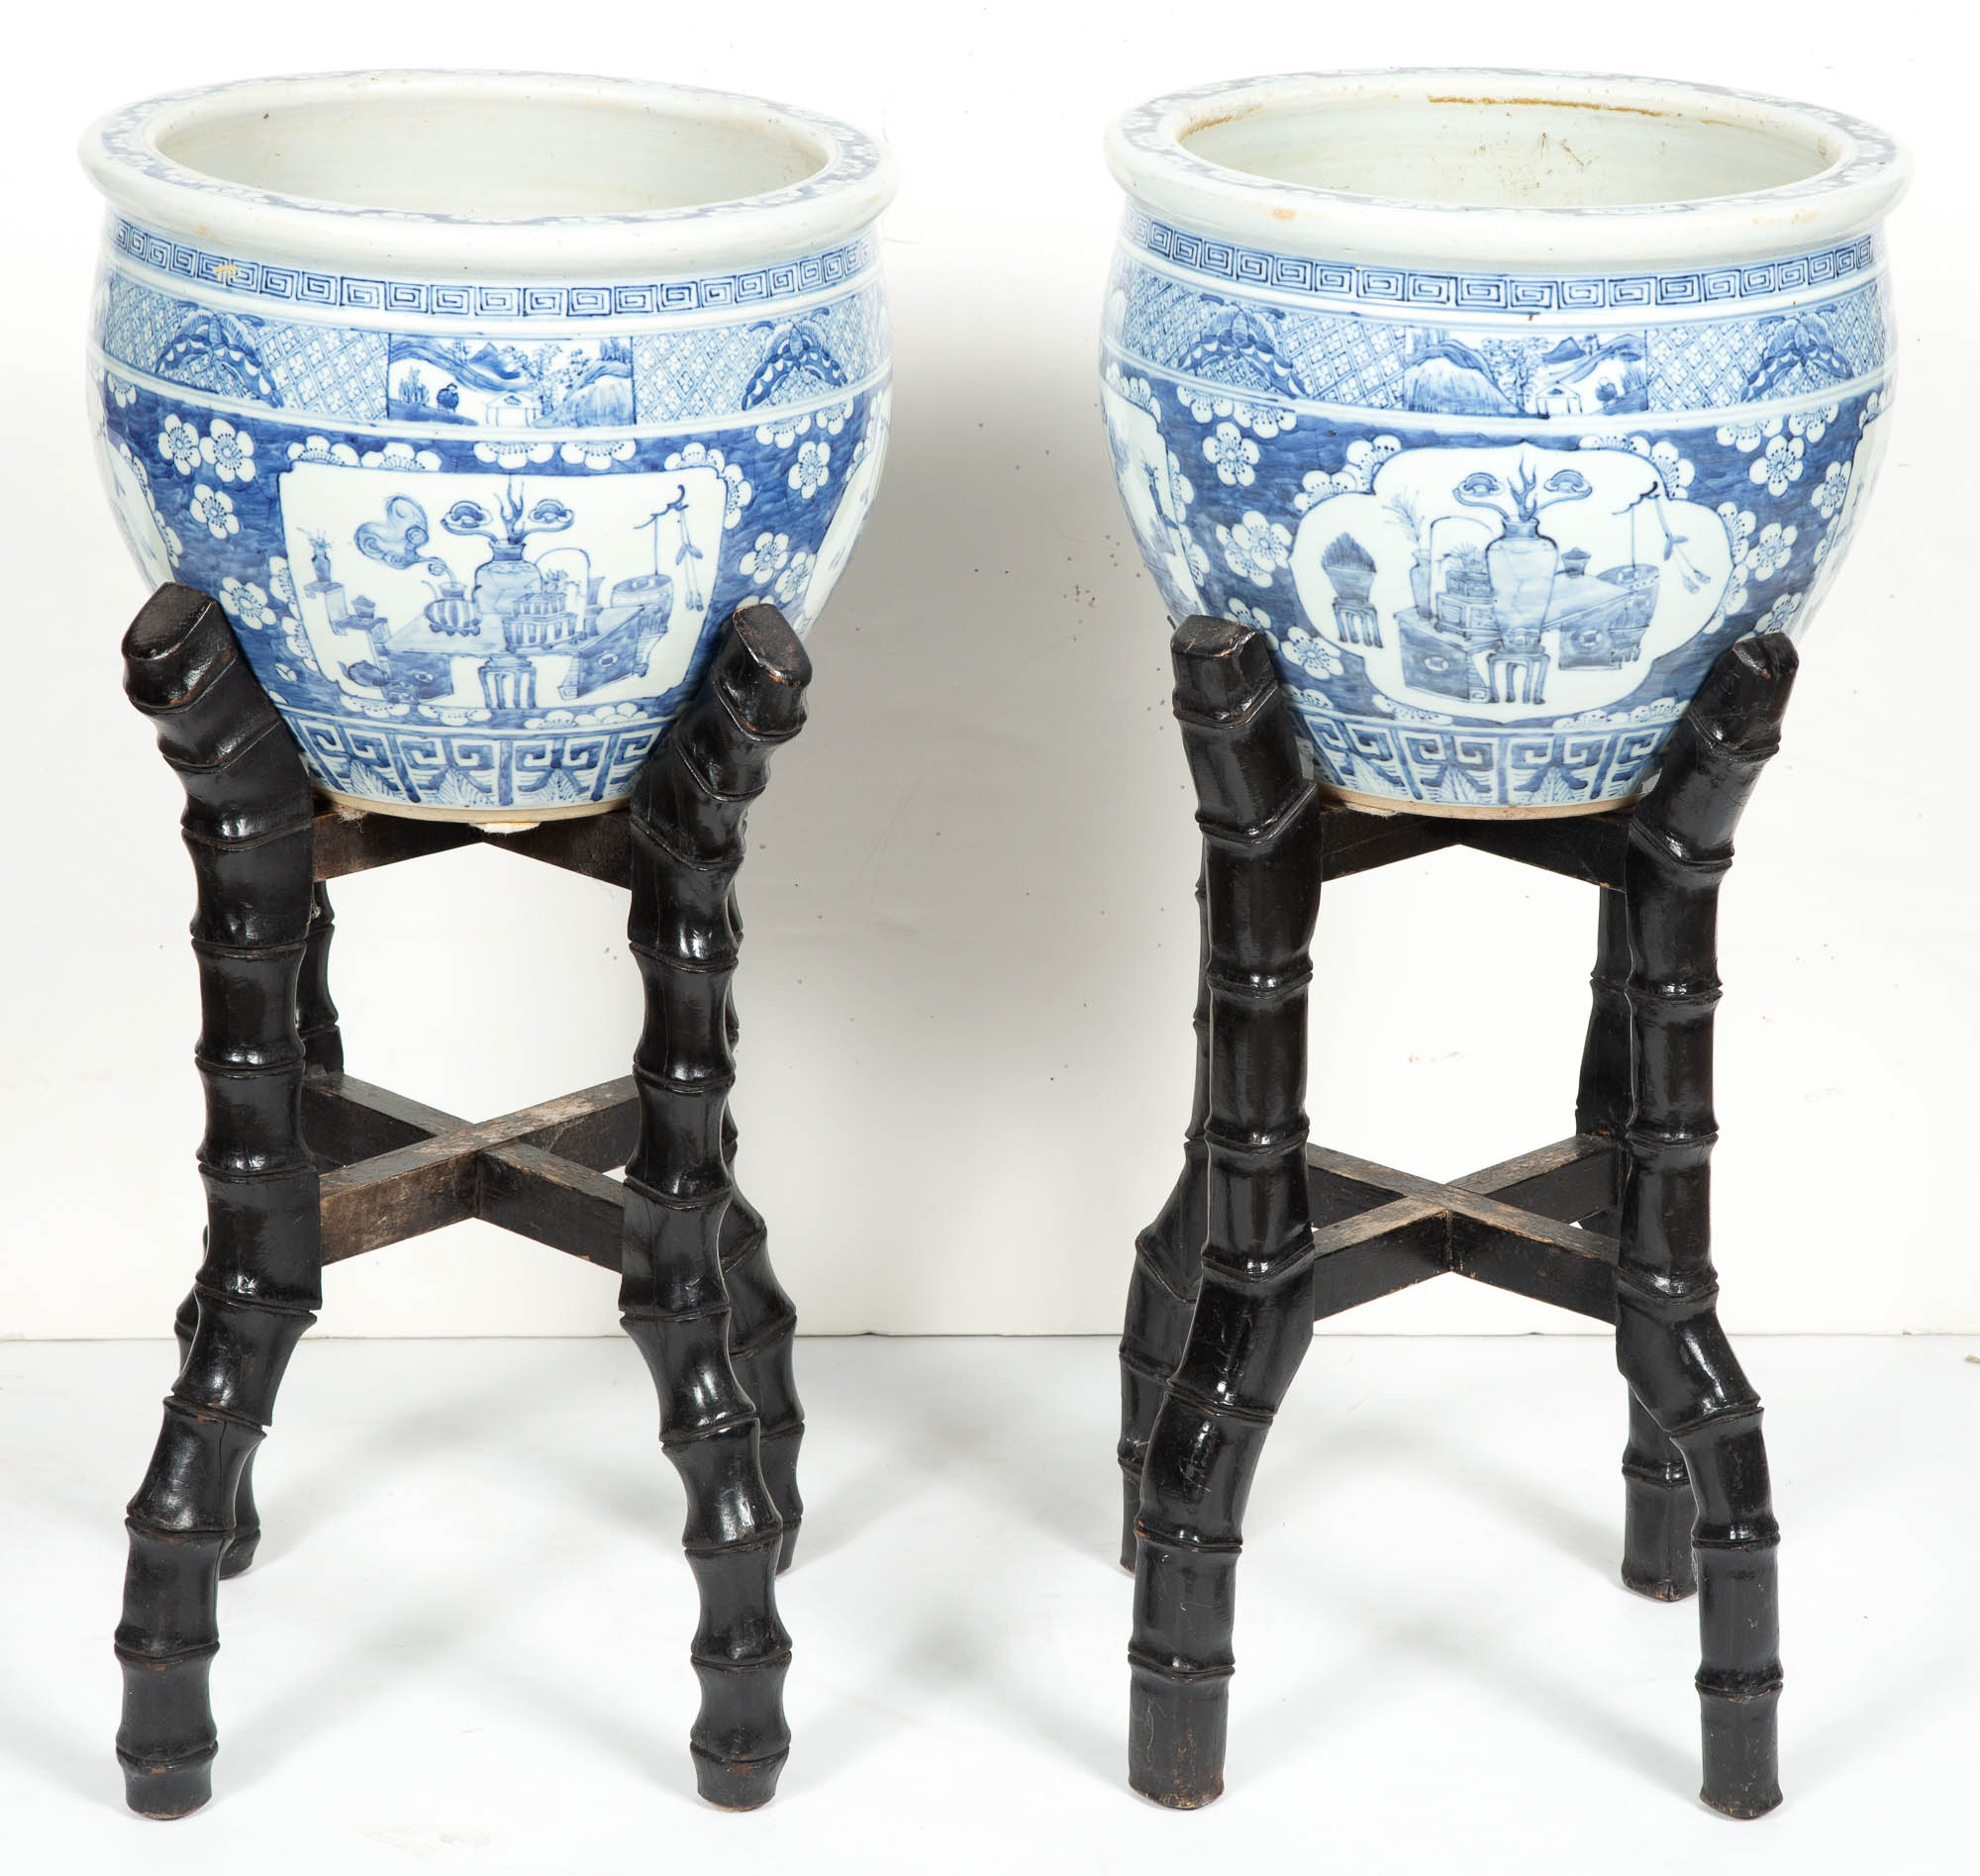 Lot image - Pair of Chinese Export Blue and White Porcelain Jardinières on Stands